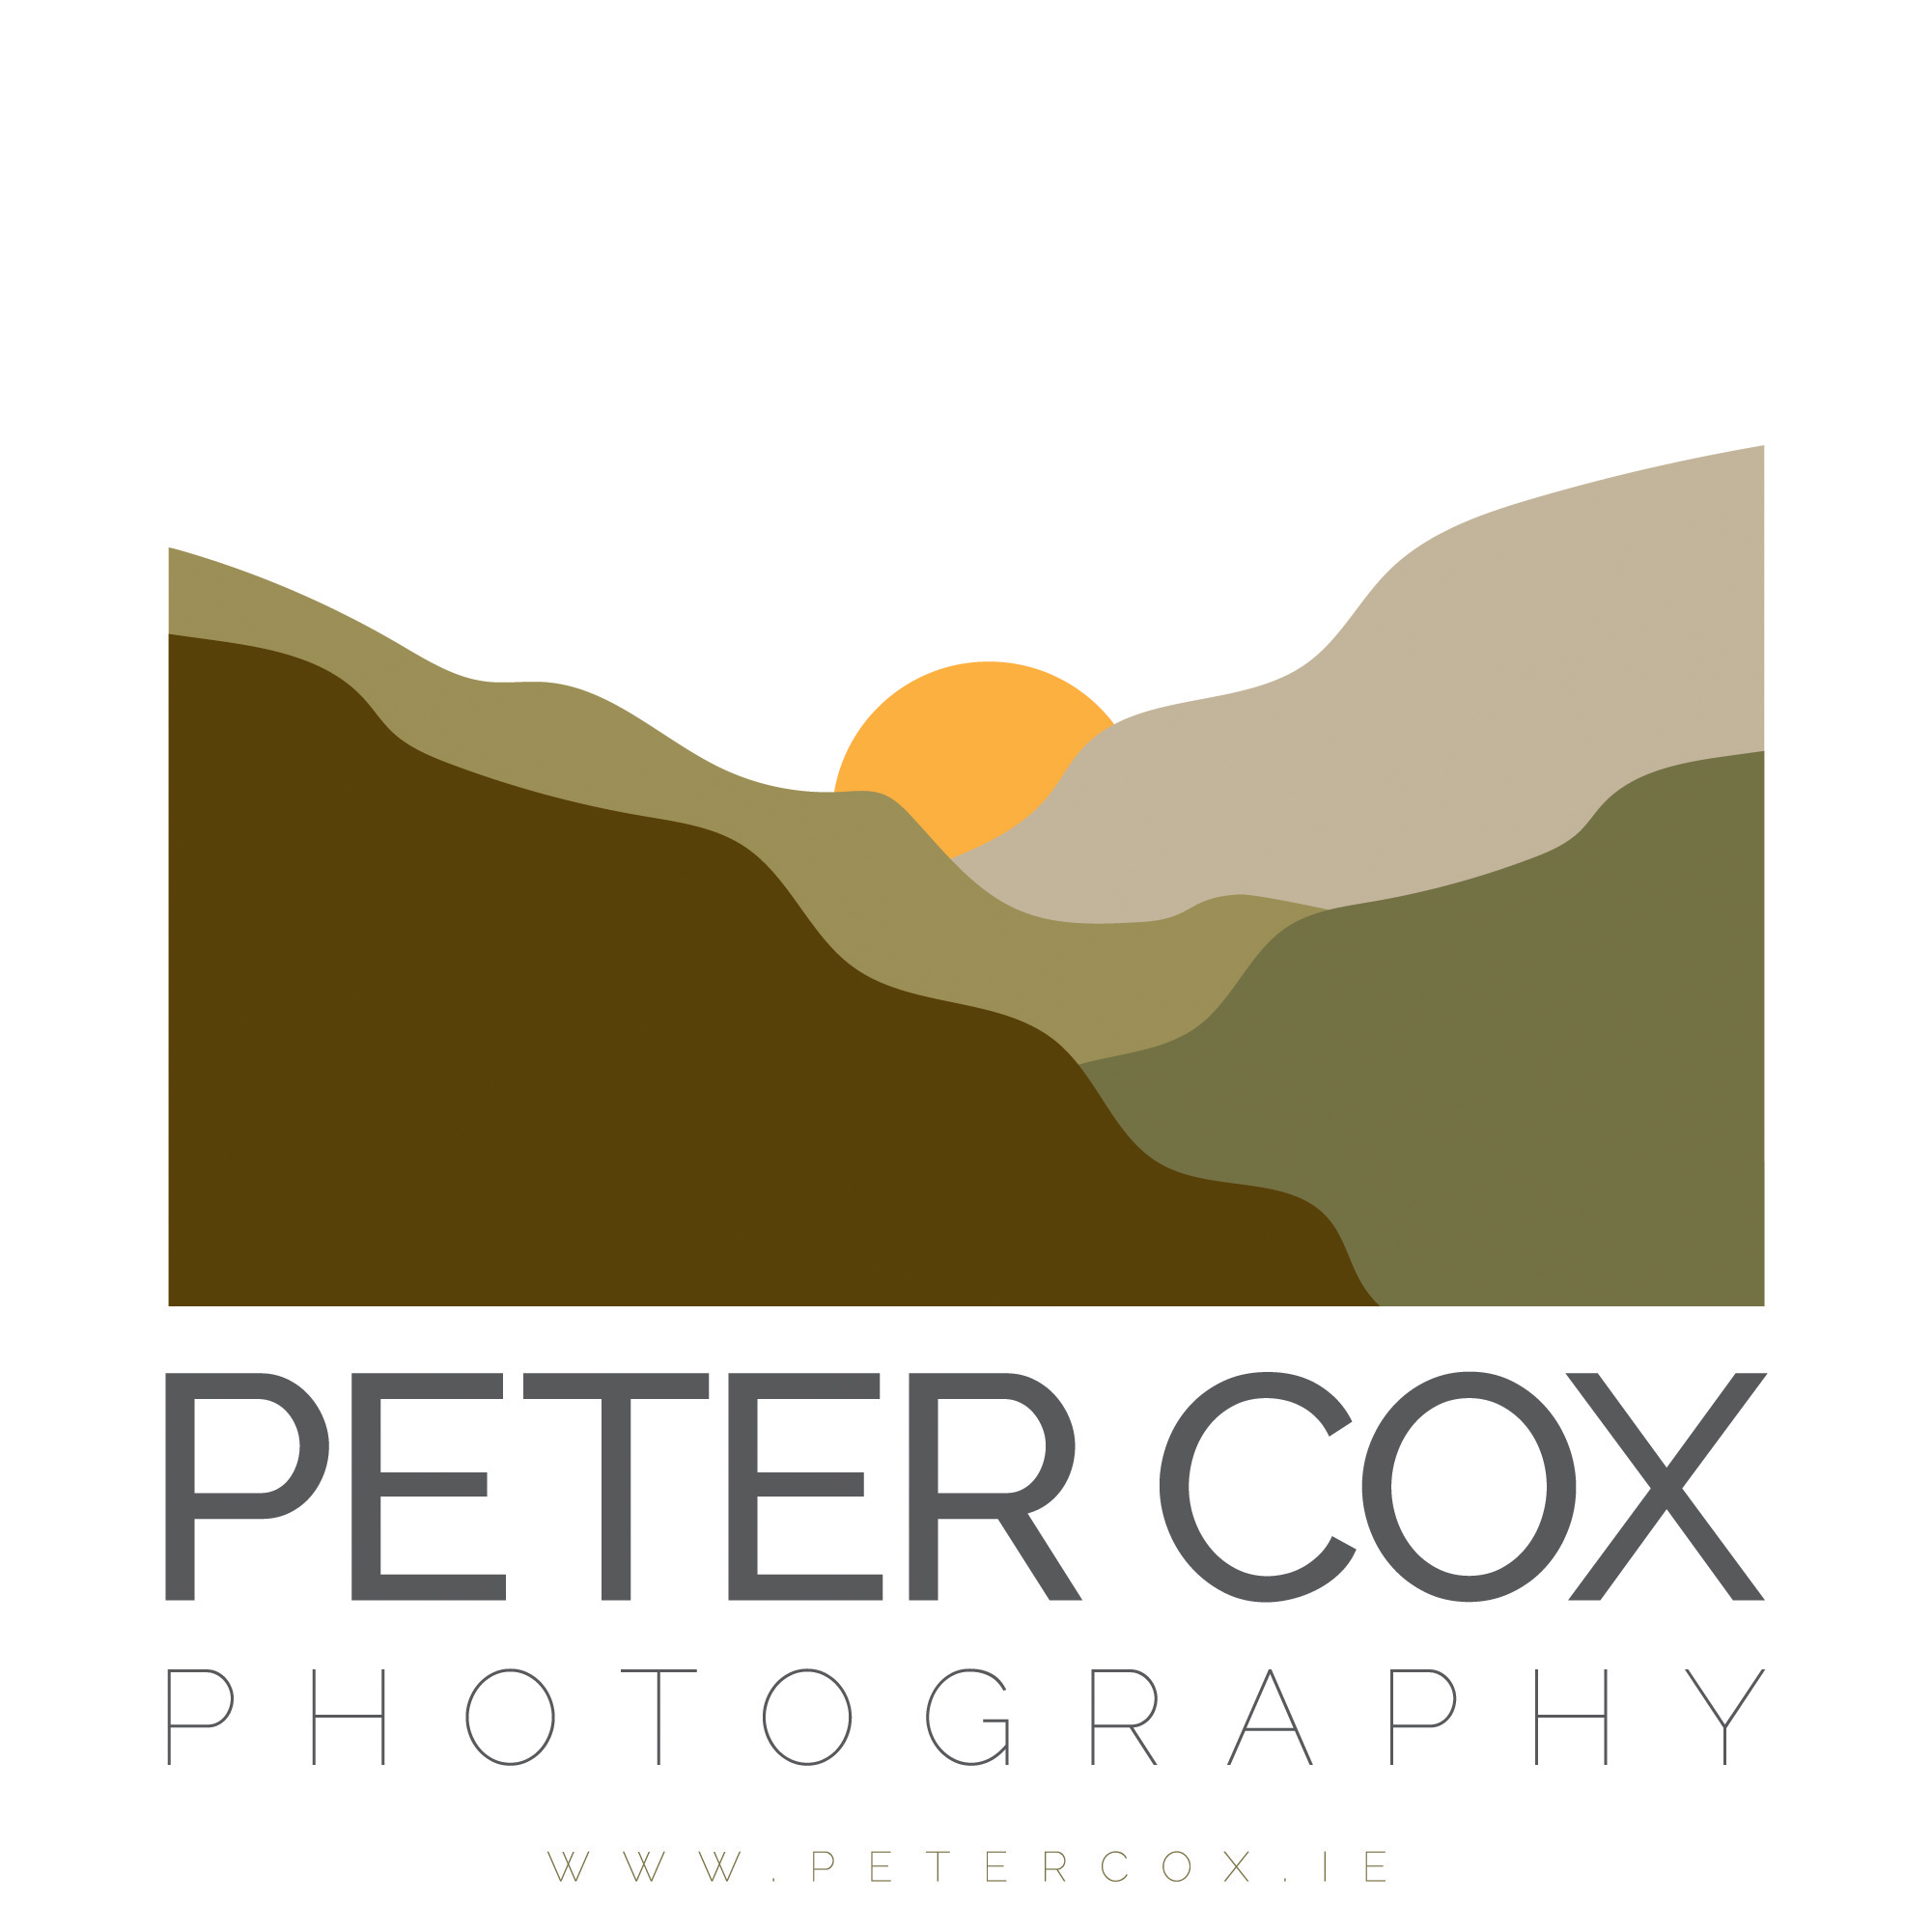 PeterCoxPhotographyPodcast.jpg